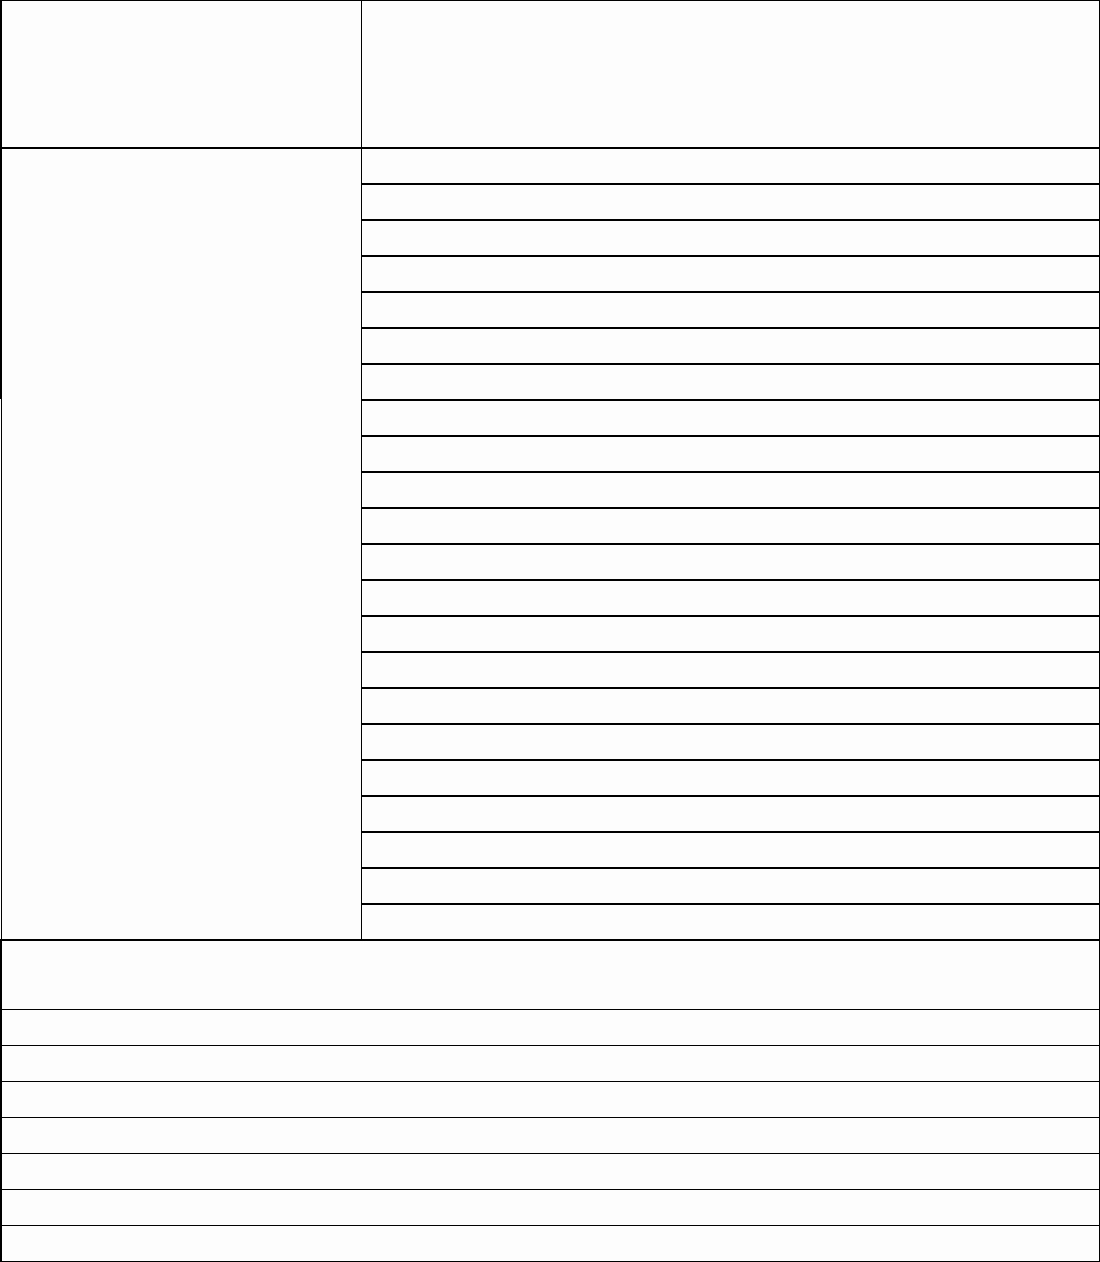 Cornell Notes Template Download Awesome Cornell Notes Template In Word and Pdf formats